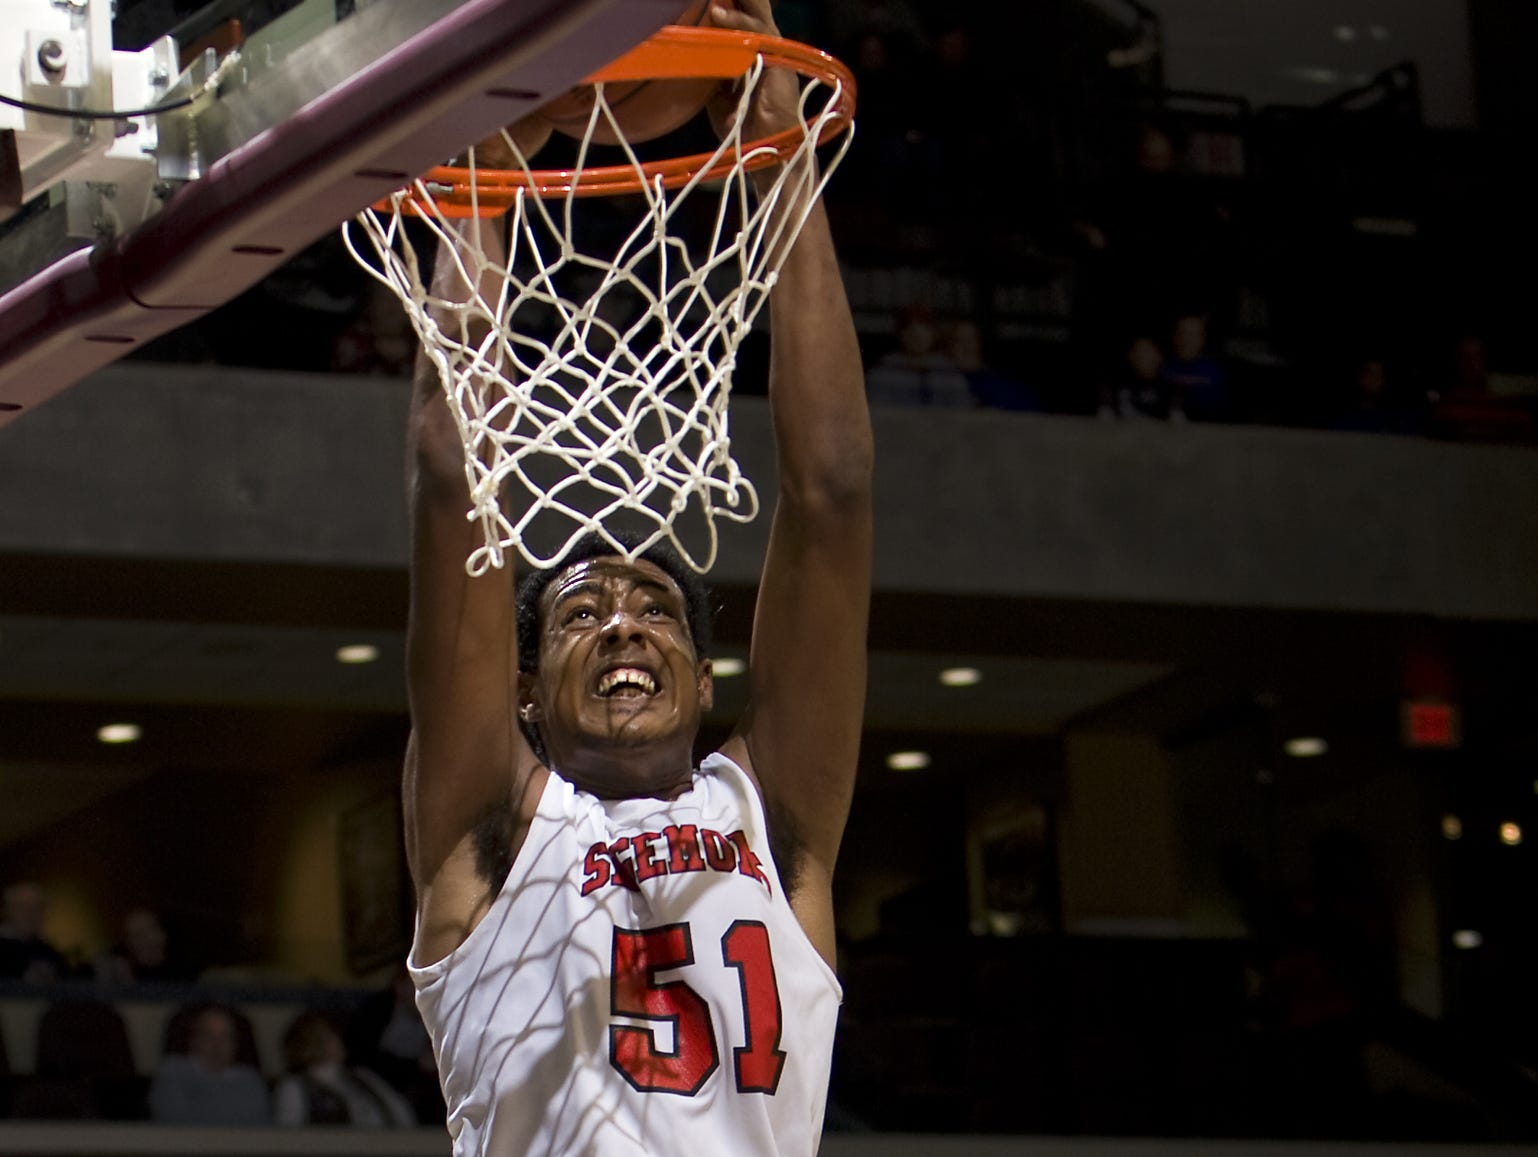 Sagemont High School center Fab Melo, left, dunks the basketball past the defense of United Faith Christian Academy during the fourth quarter of a 2010 Bass Pro Tournament of Champions basketball game at JQH Arena.